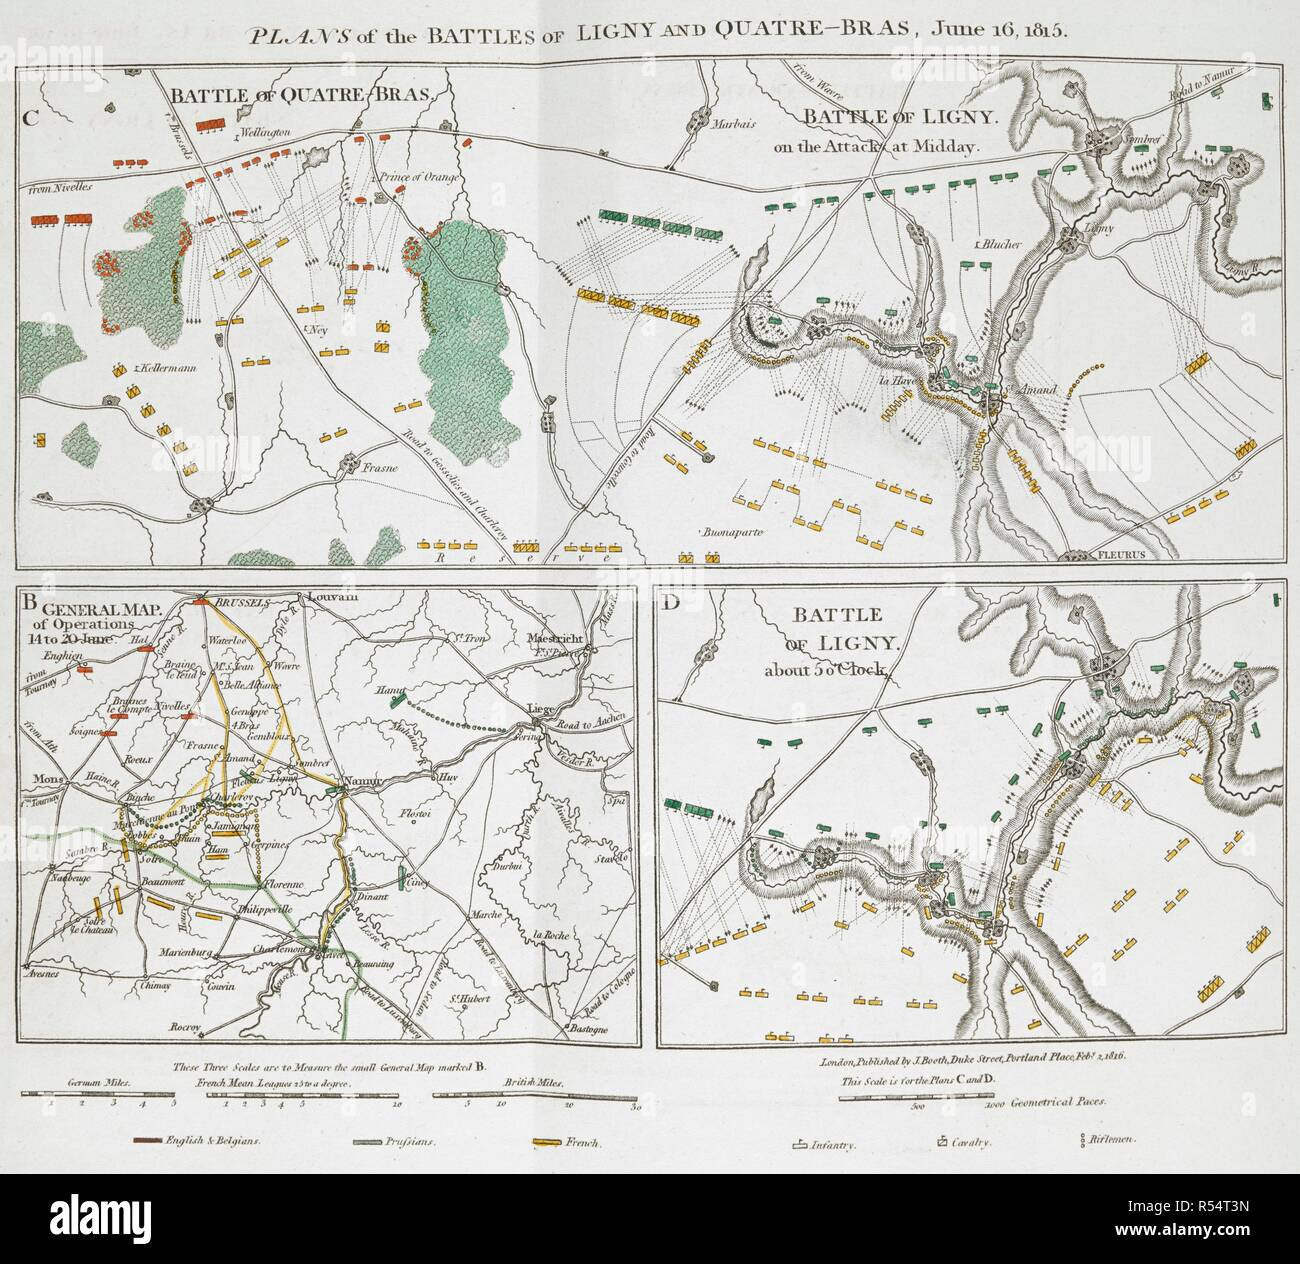 Plans of the Battles of Ligny and Quatre-Bras, June 16, 1815. The Battle of Waterloo, also of Ligny and Quatre-Bras described by ... a near observer ... [A narrative by C. A. Eaton, with a sketch by J. Waldie... from sketches by Captain G. Jones. 2 vol. John Booth; T. Egerton: London, 1817. Source: G.5651 part 2, 3rd fold-out plan. Author: Eaton, Charlotte Anne. Jones, Captain George. - Stock Image